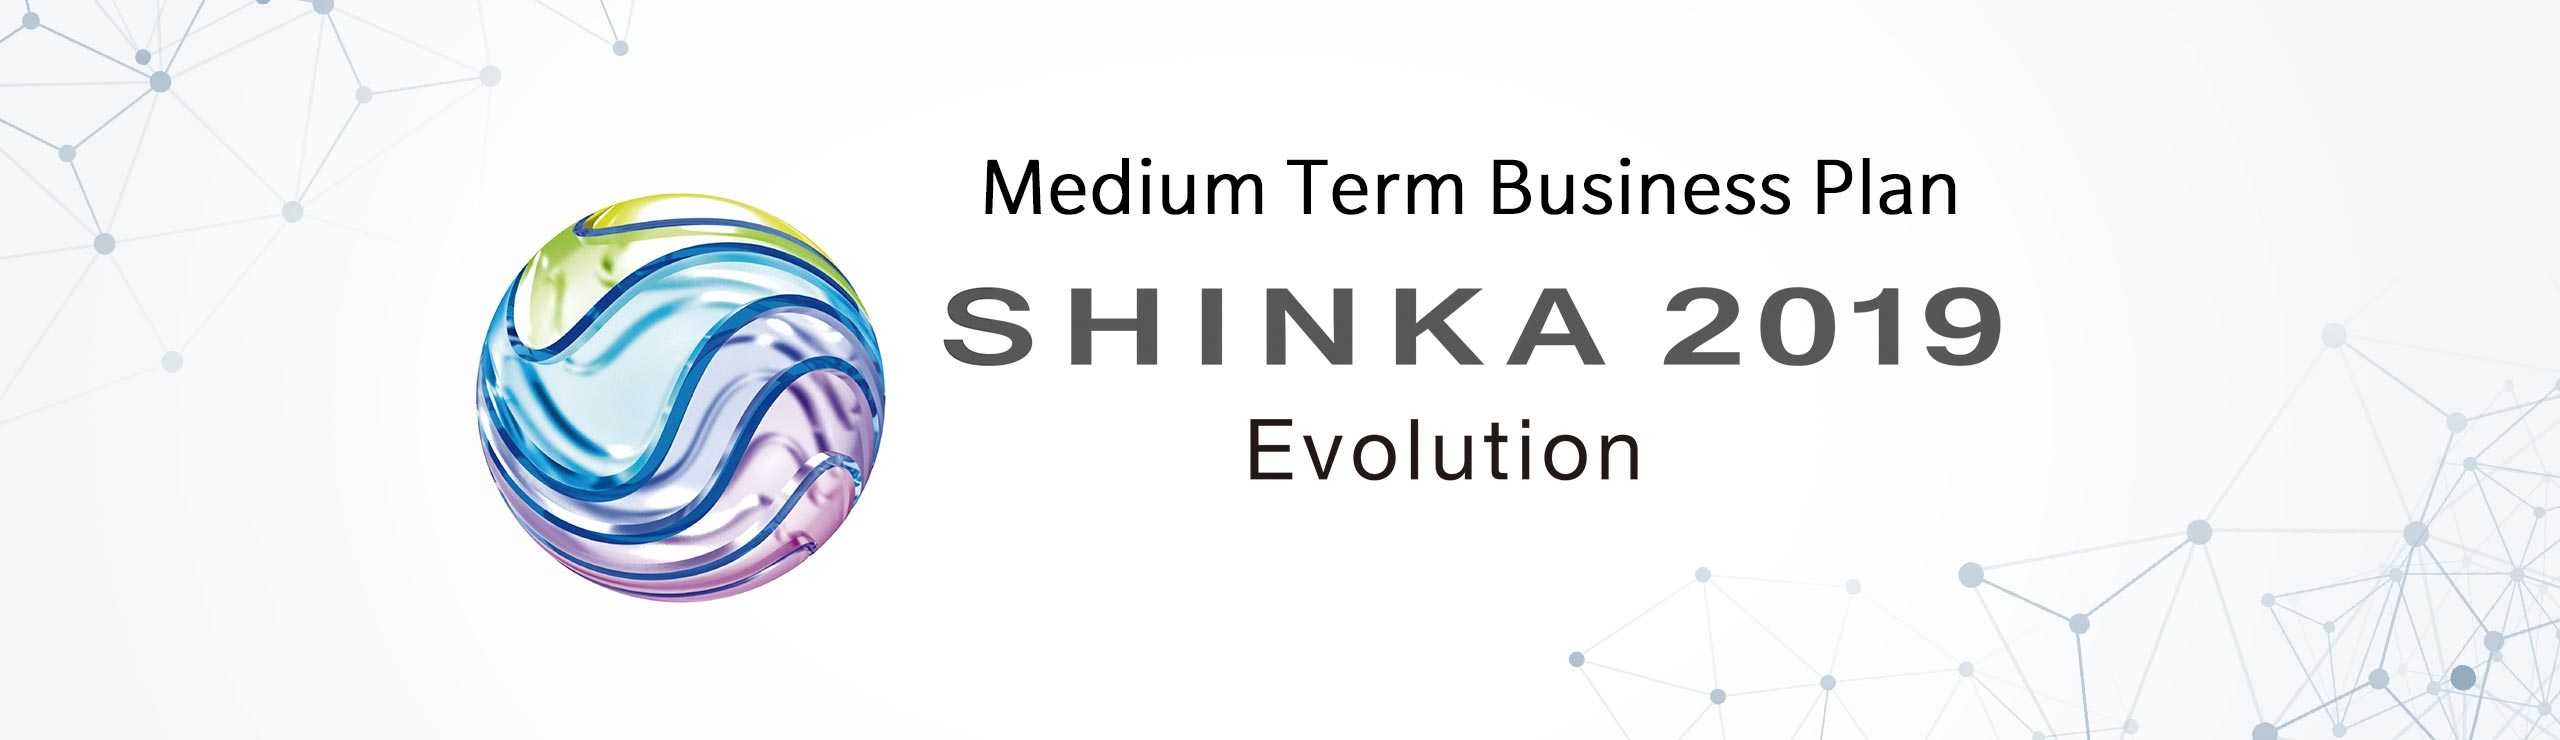 Medium Term Business Plan SHINKA 2019